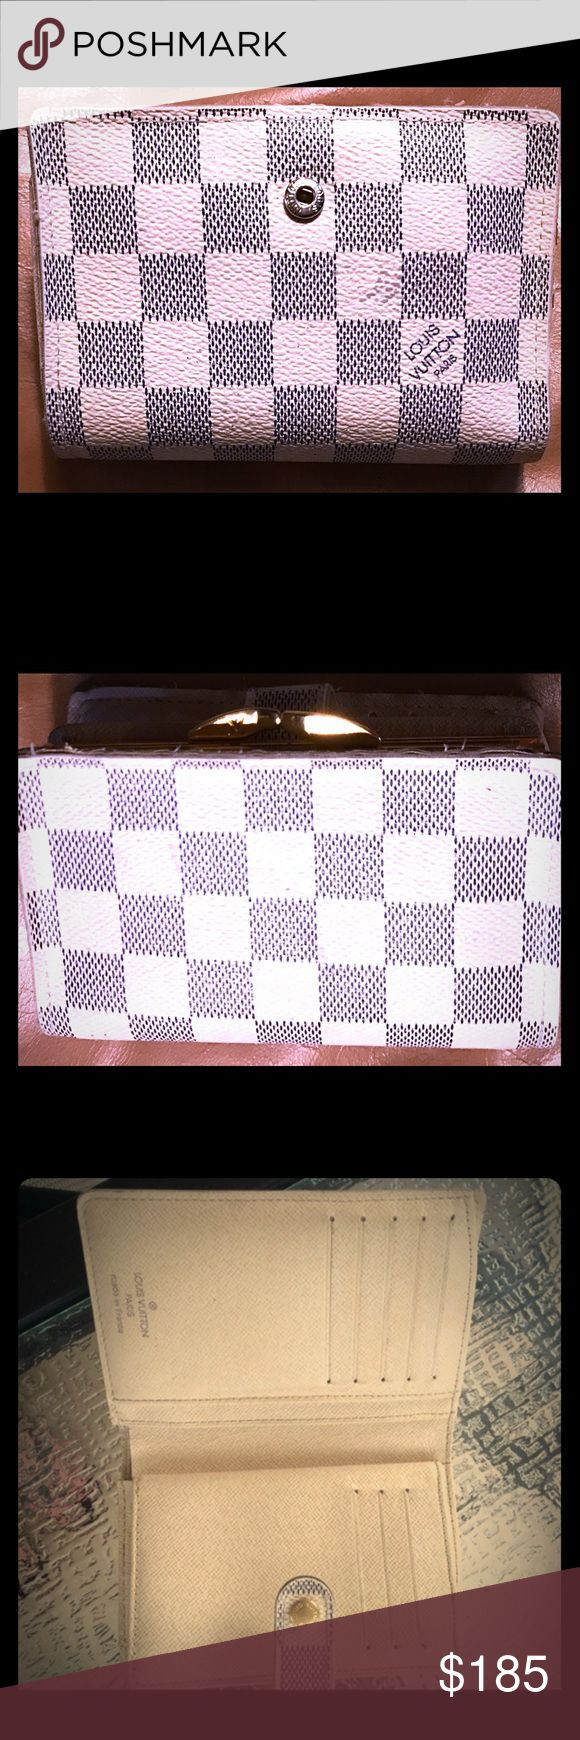 Women's LOUIS V checkered wallet Mildly worn but still very much in good condition.  Has been a great wallet... highly recommended from the LV collection. Louis Vuitton Bags Wallets